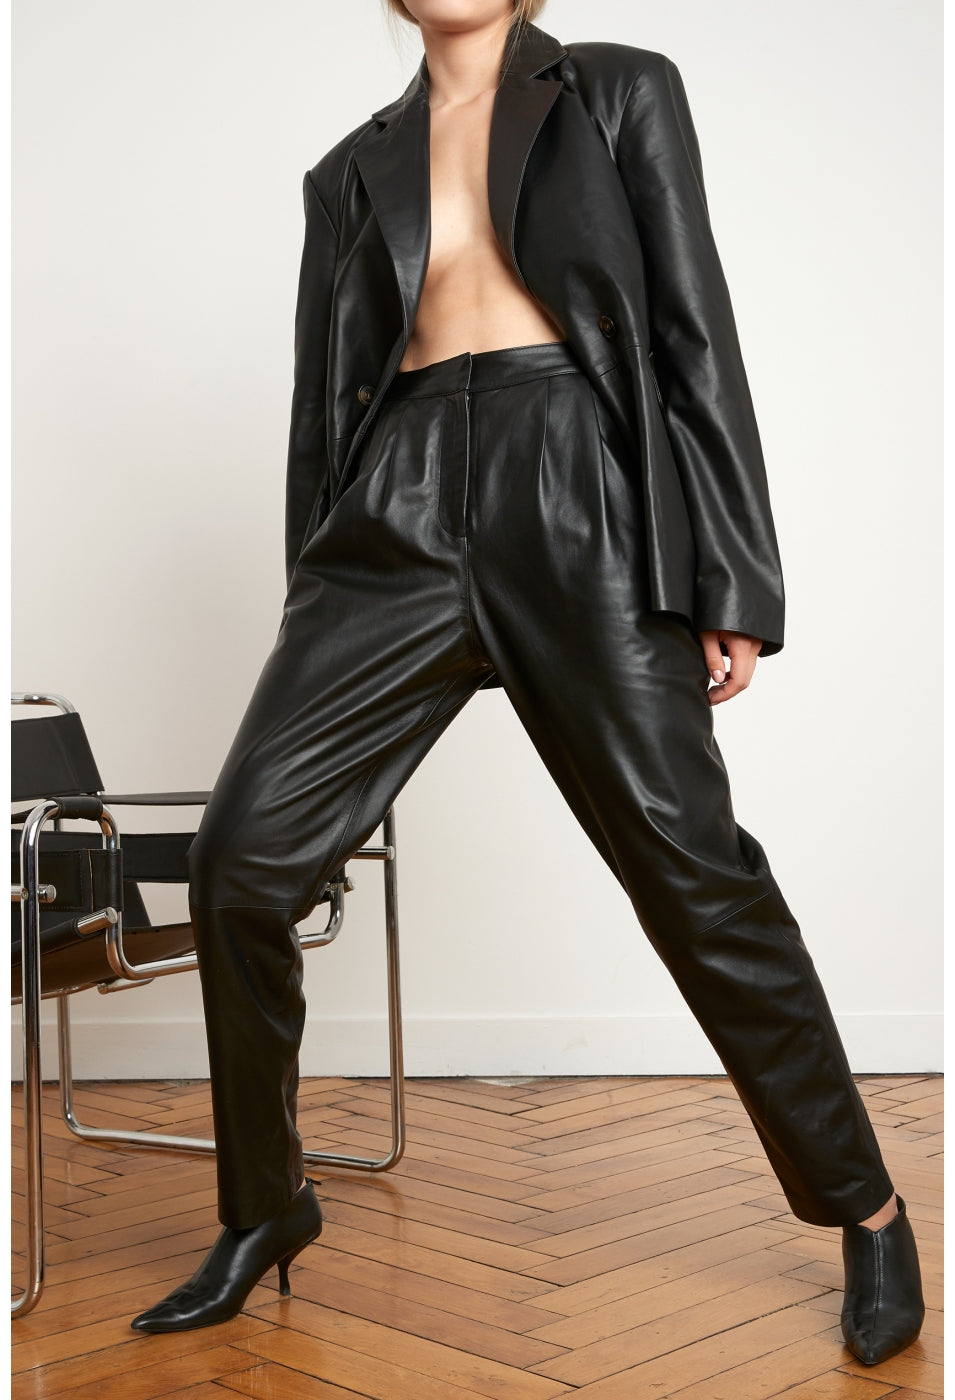 PALAOS PLEATED LEATHER TROUSERS BY LOULOU STUDIO